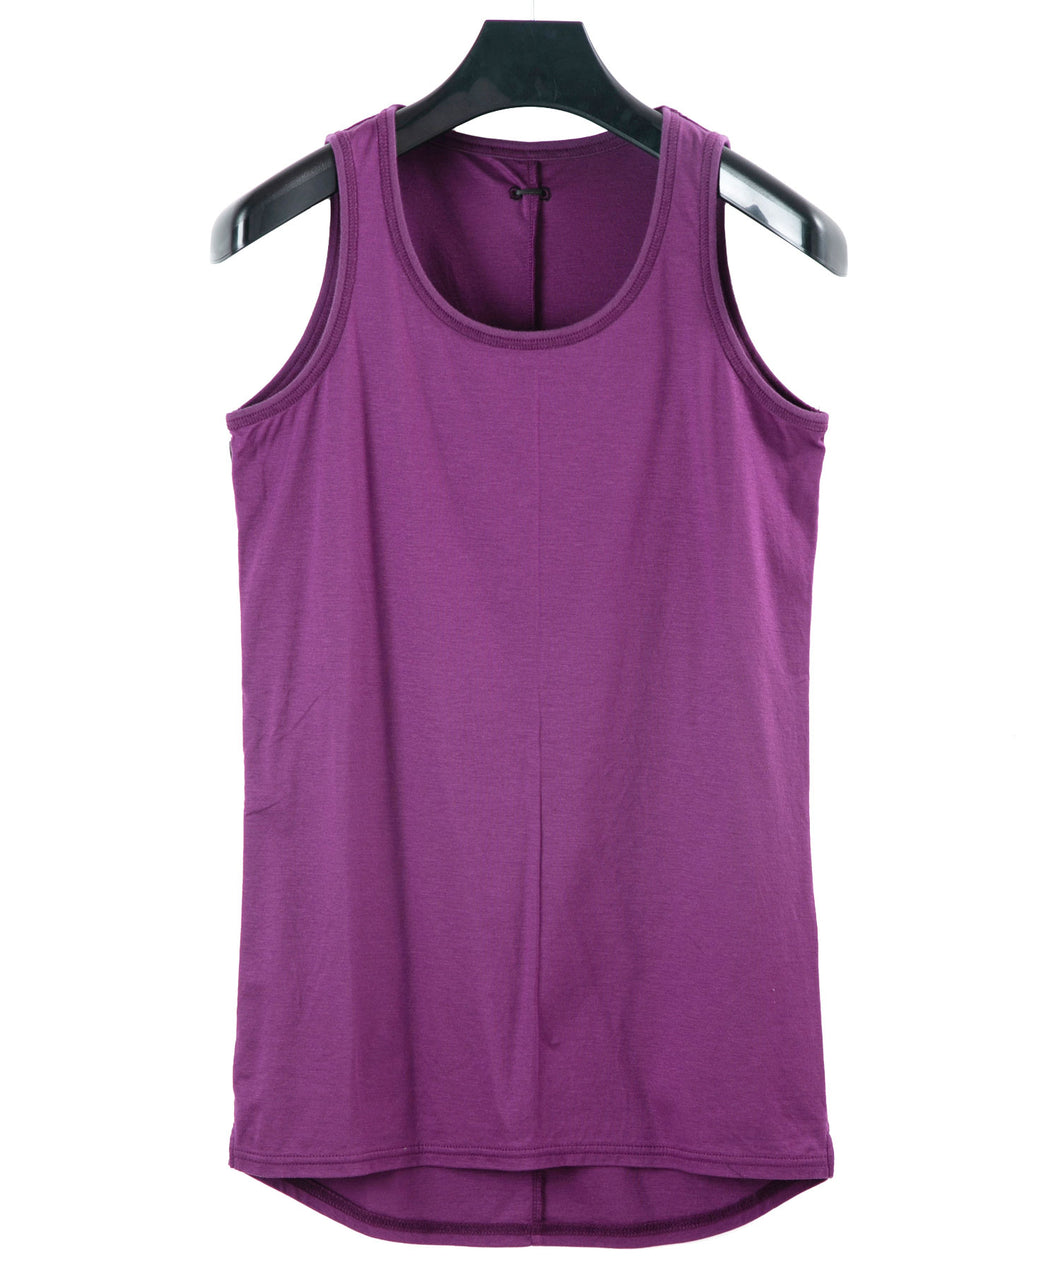 Giza Lyocell High Gauge Cotton Tank Top / Purple